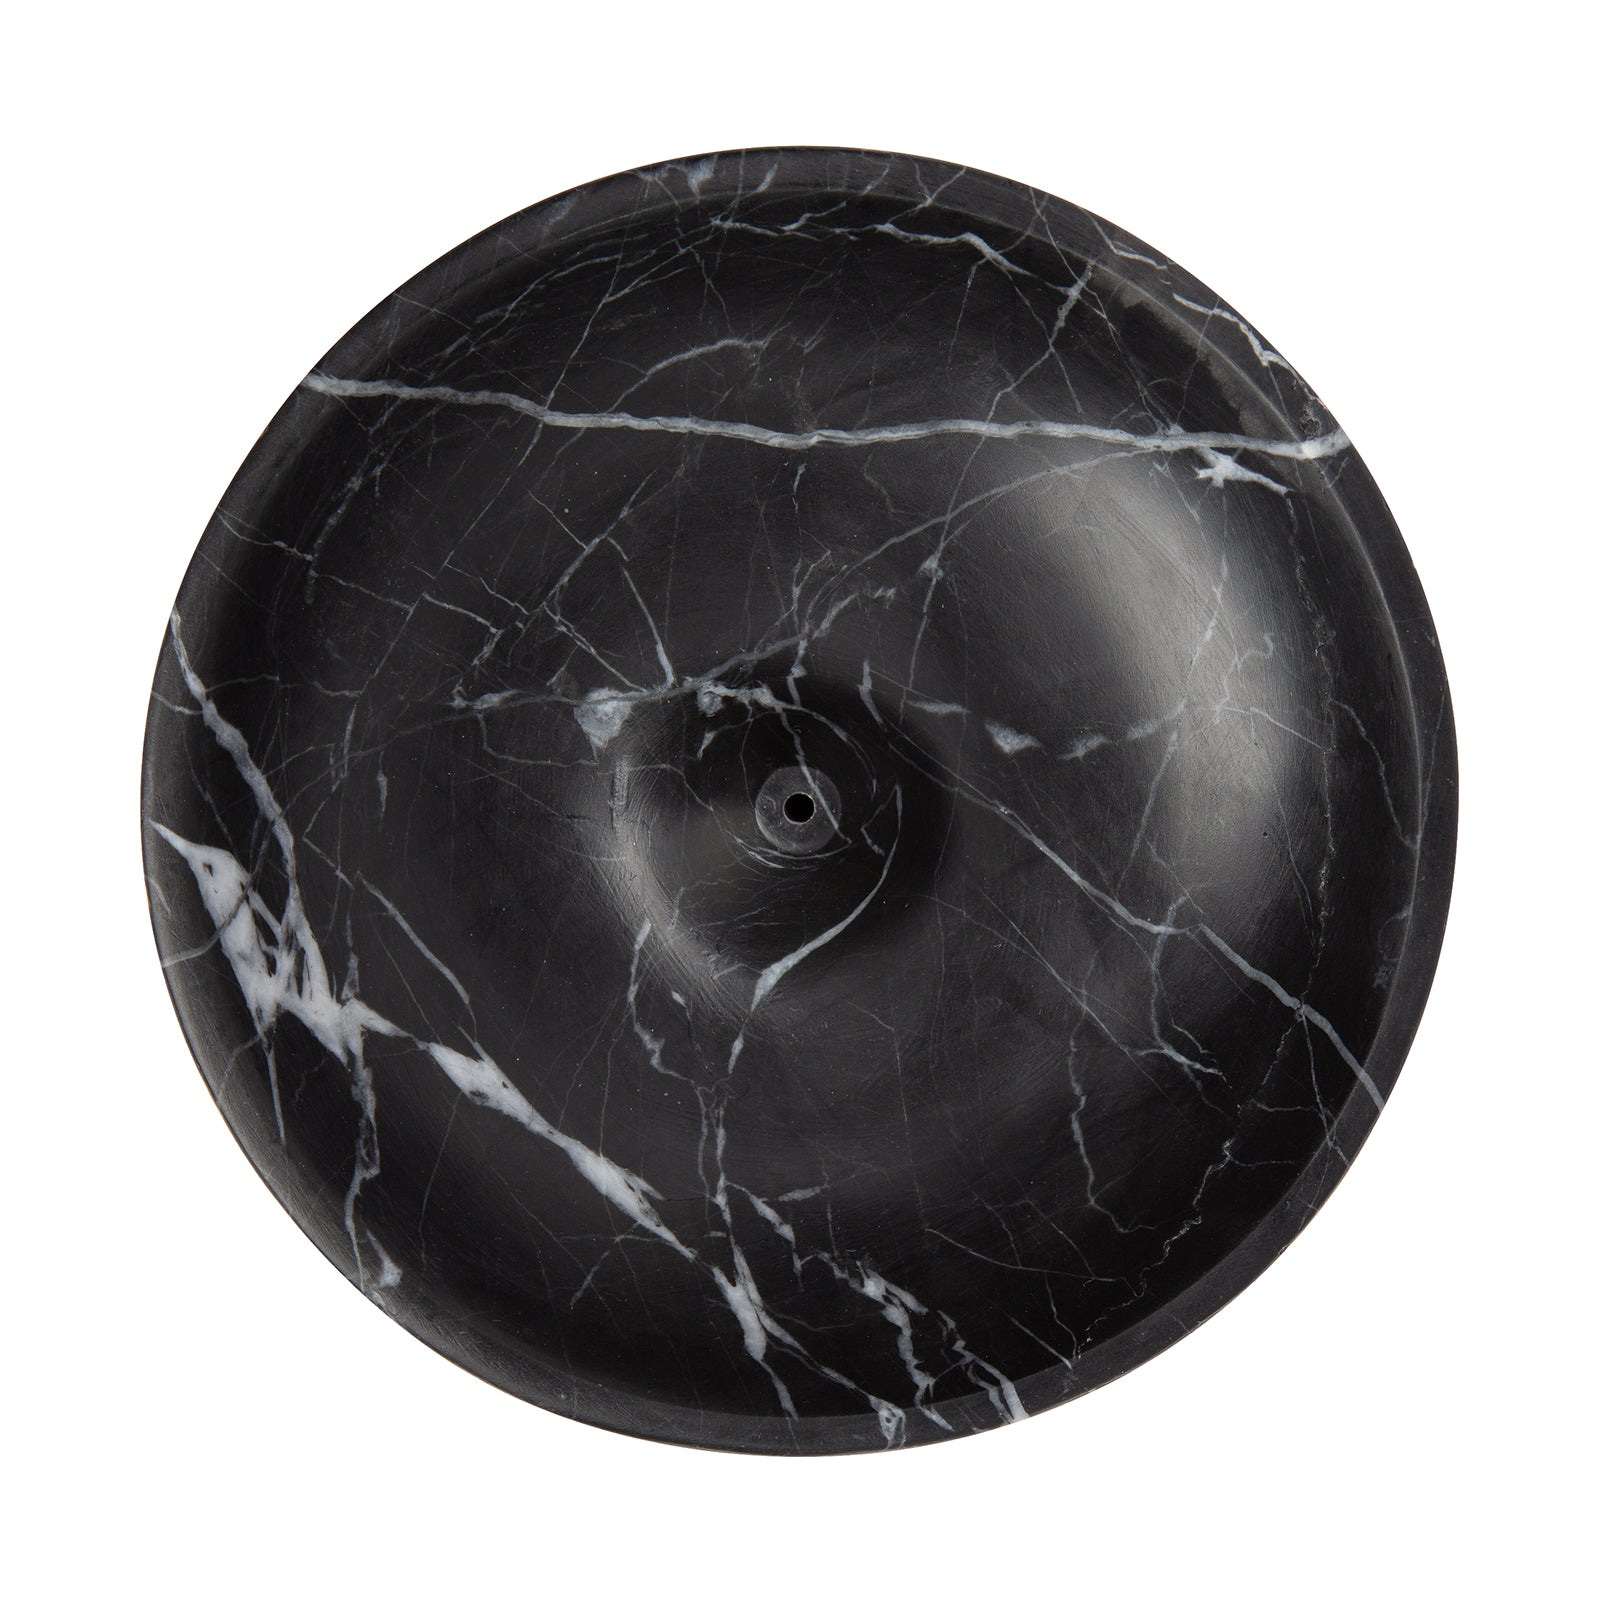 BE Home Large Incense Holder - Black Marble - Home & Decor - Broken English Jewelry